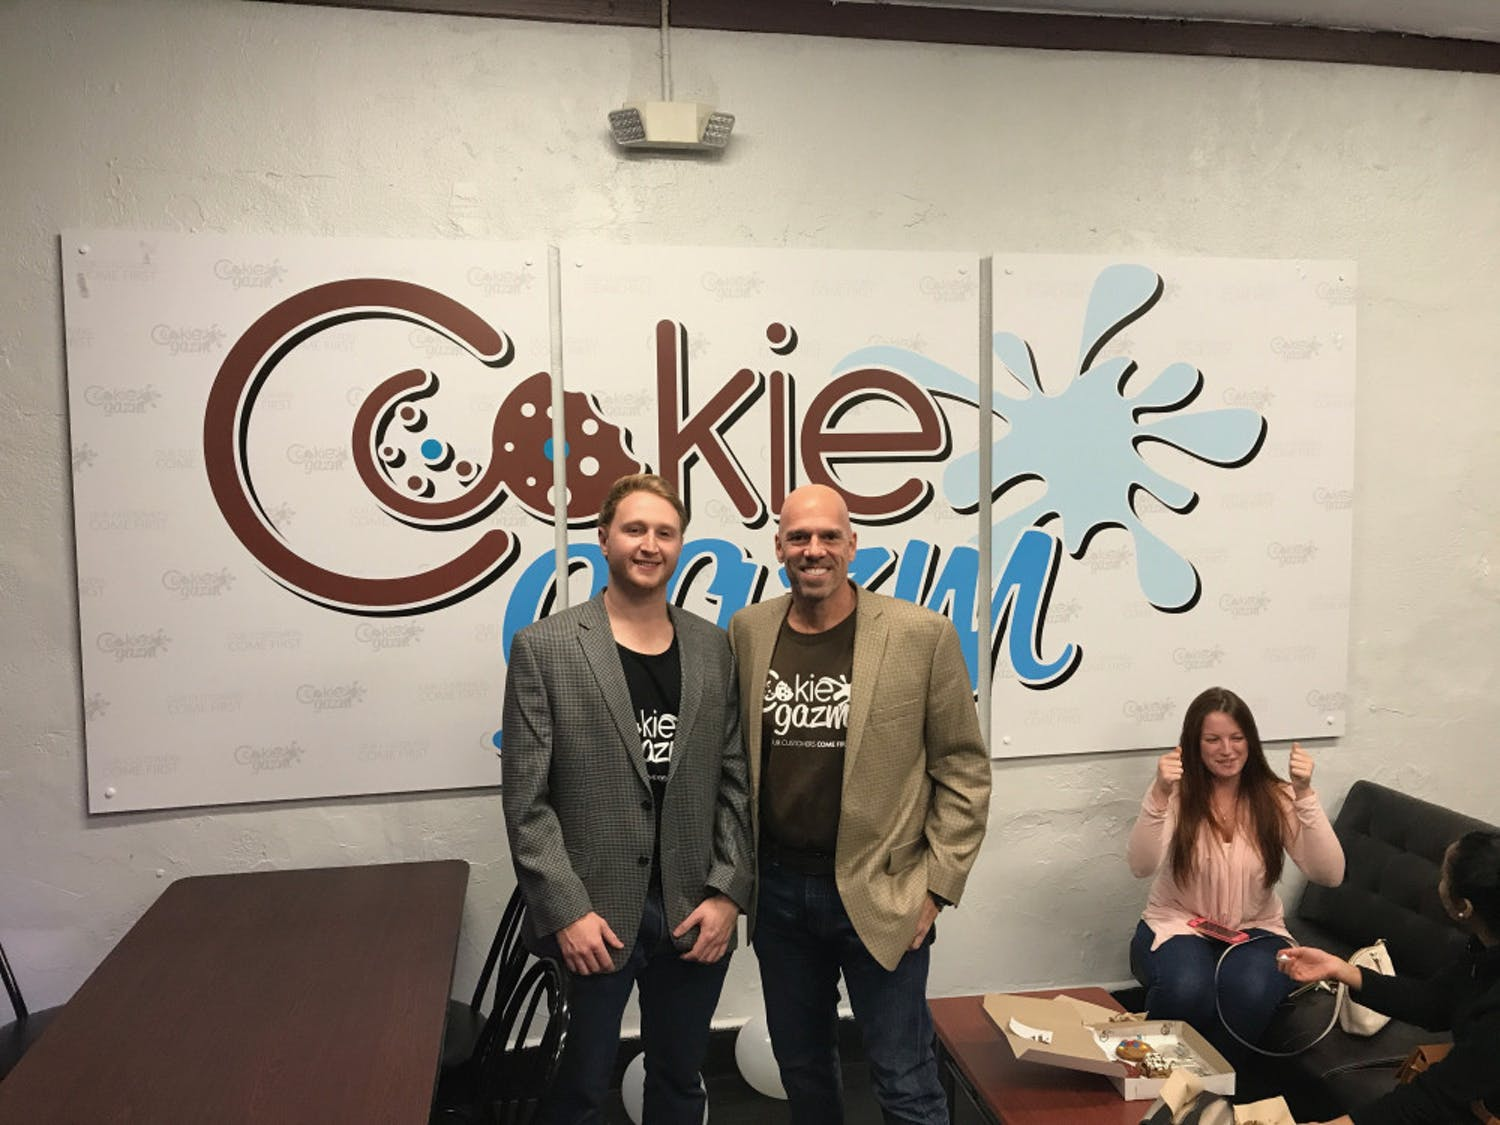 Aaron Seemann, owner, and Jose Benacerraf, partner and investor, celebrate the opening of Cookiegazm's new store located in downtown Gainesville.